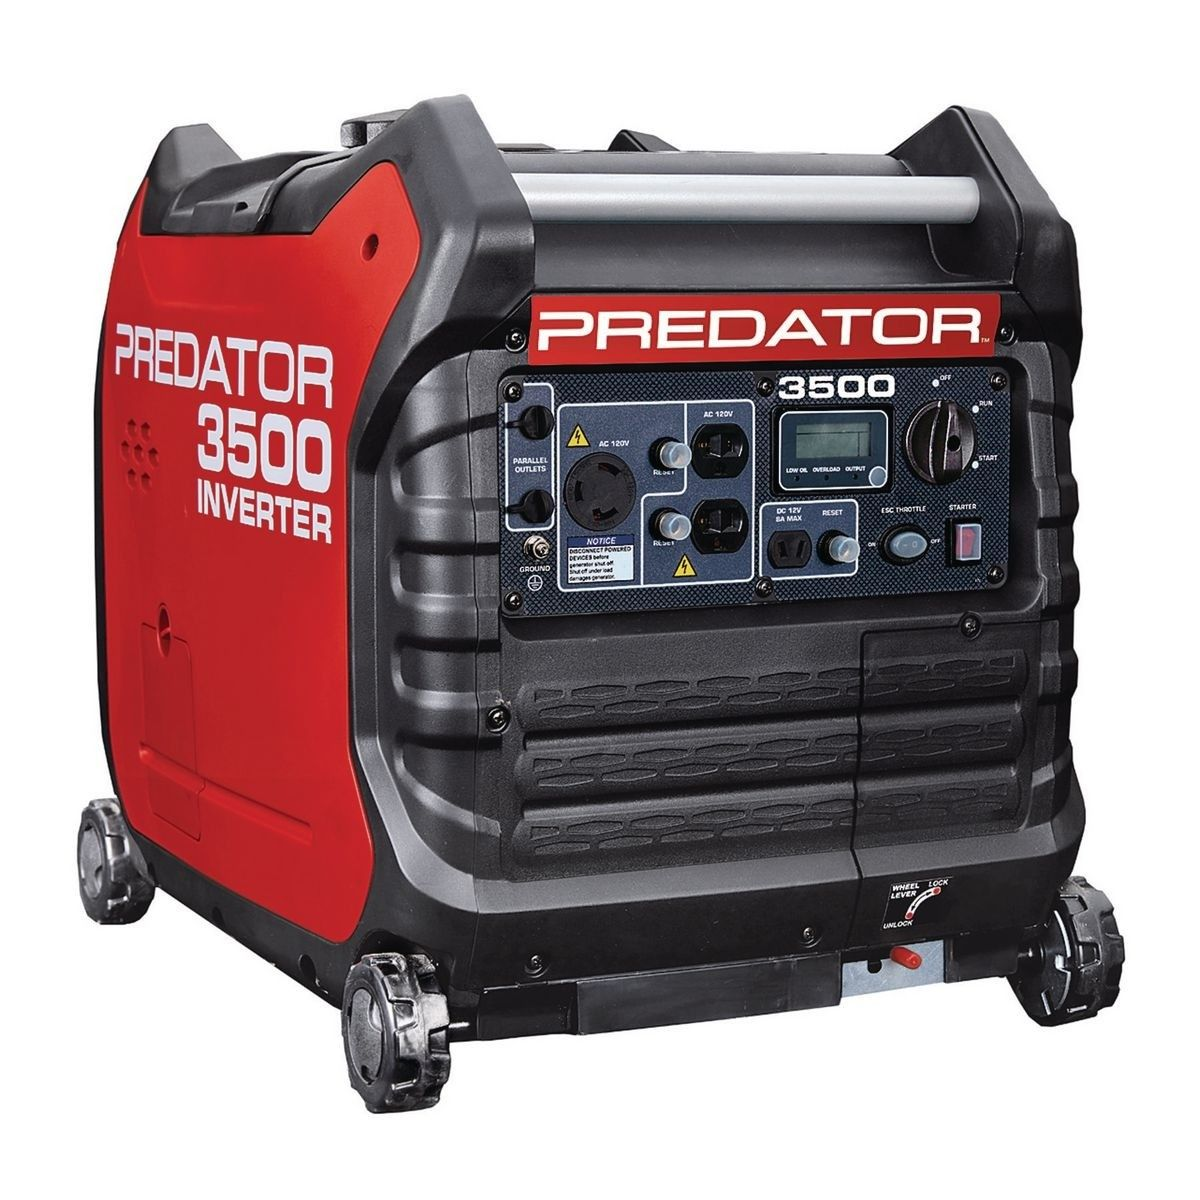 Buy The Predator 3500 Watt Super Quiet Inverter Generator For 689 99 Inverter Generator Camping Generator Portable Generator